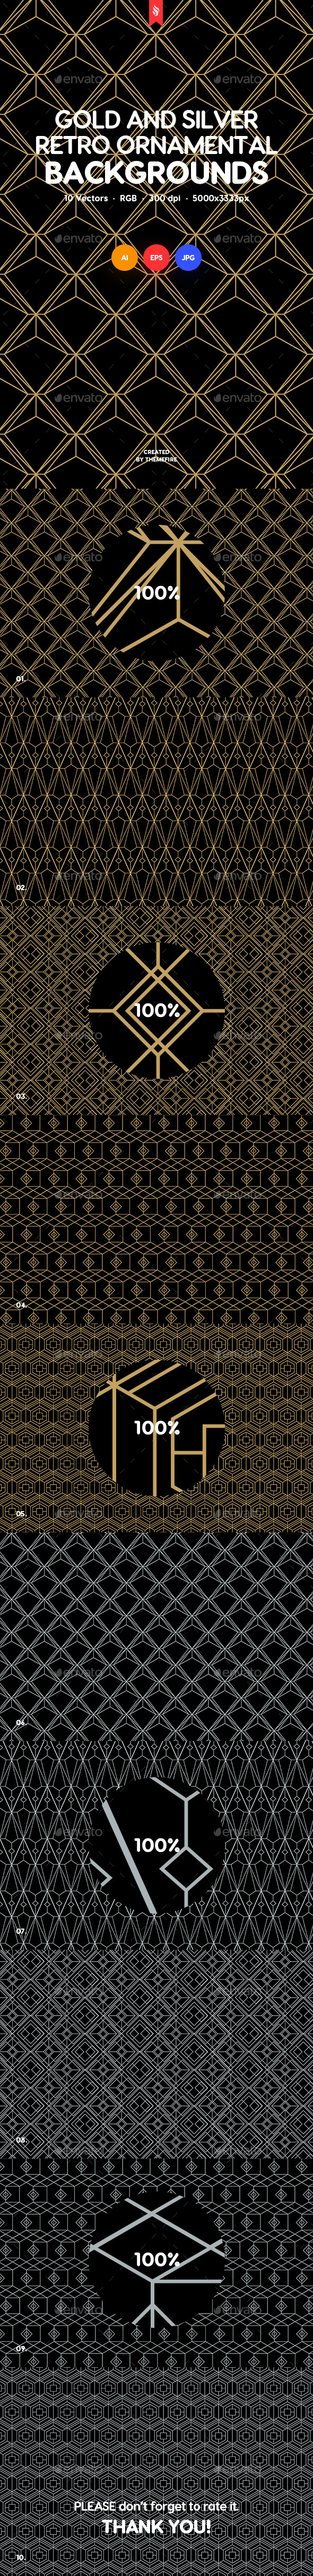 Gold and Silver Retro Ornamental Backgrounds - Backgrounds Graphics